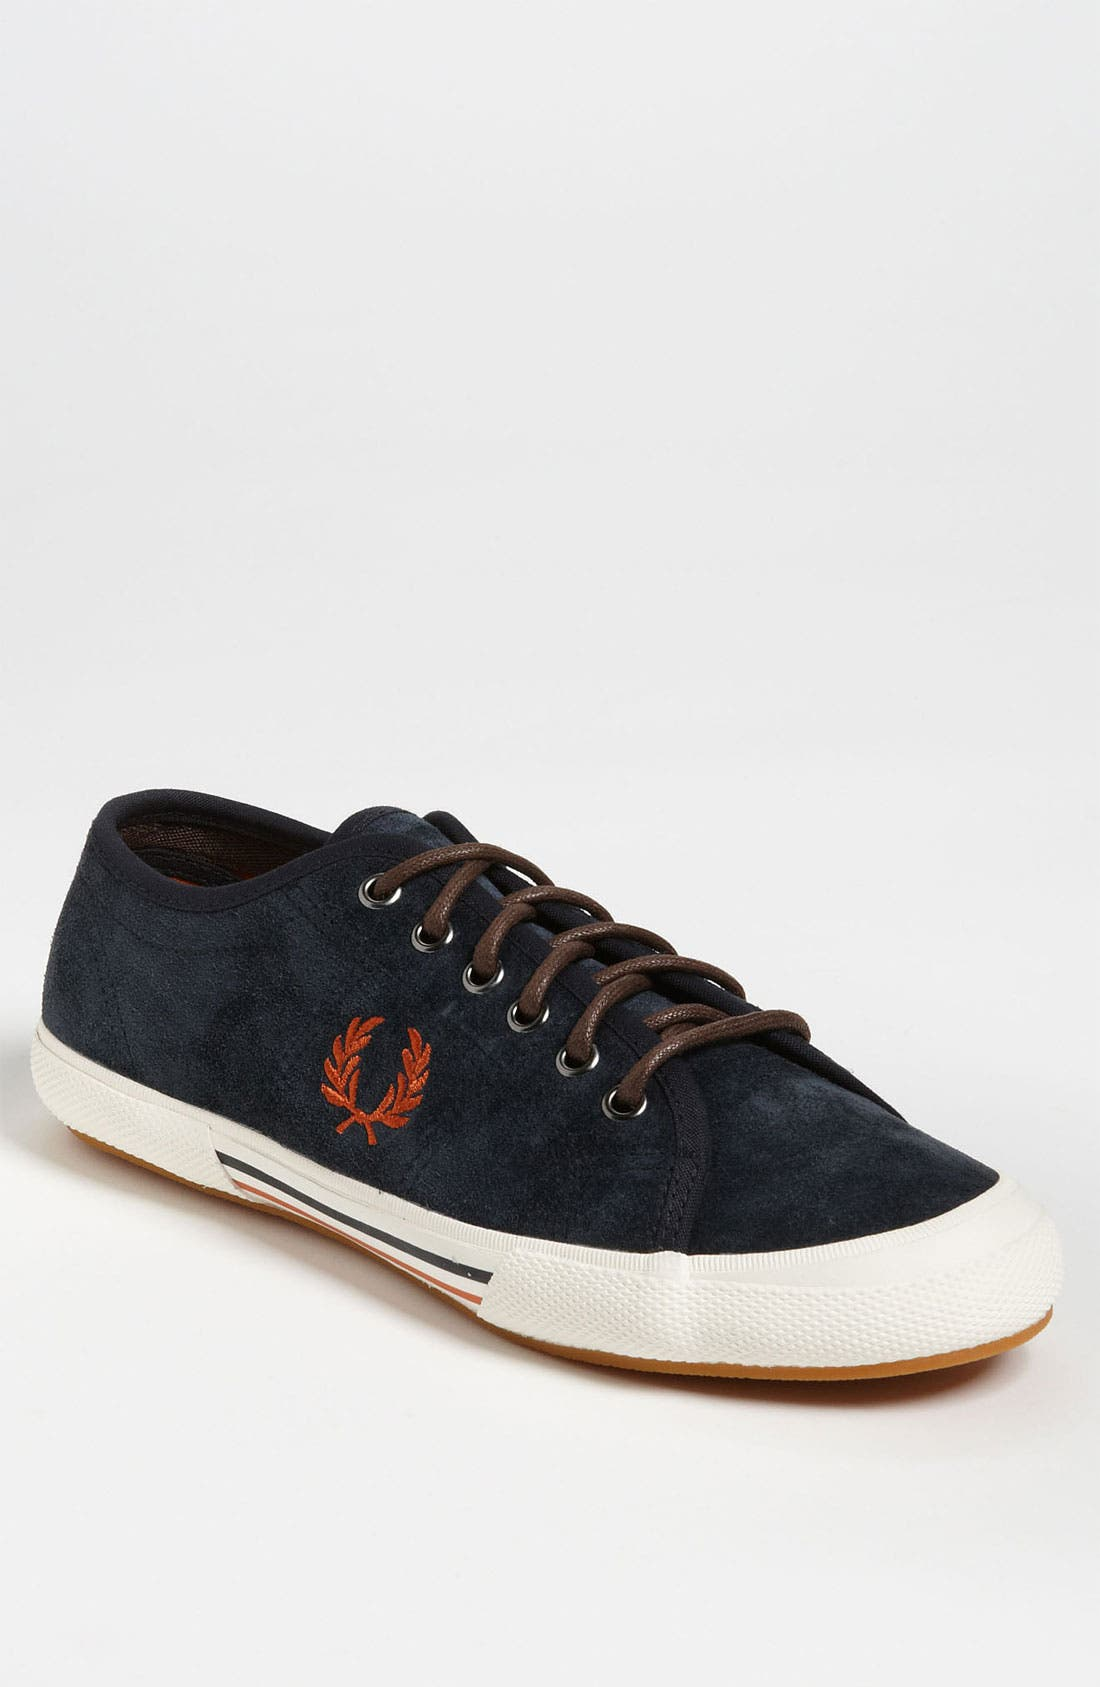 Main Image - Fred Perry Vintage Suede Tennis Sneaker